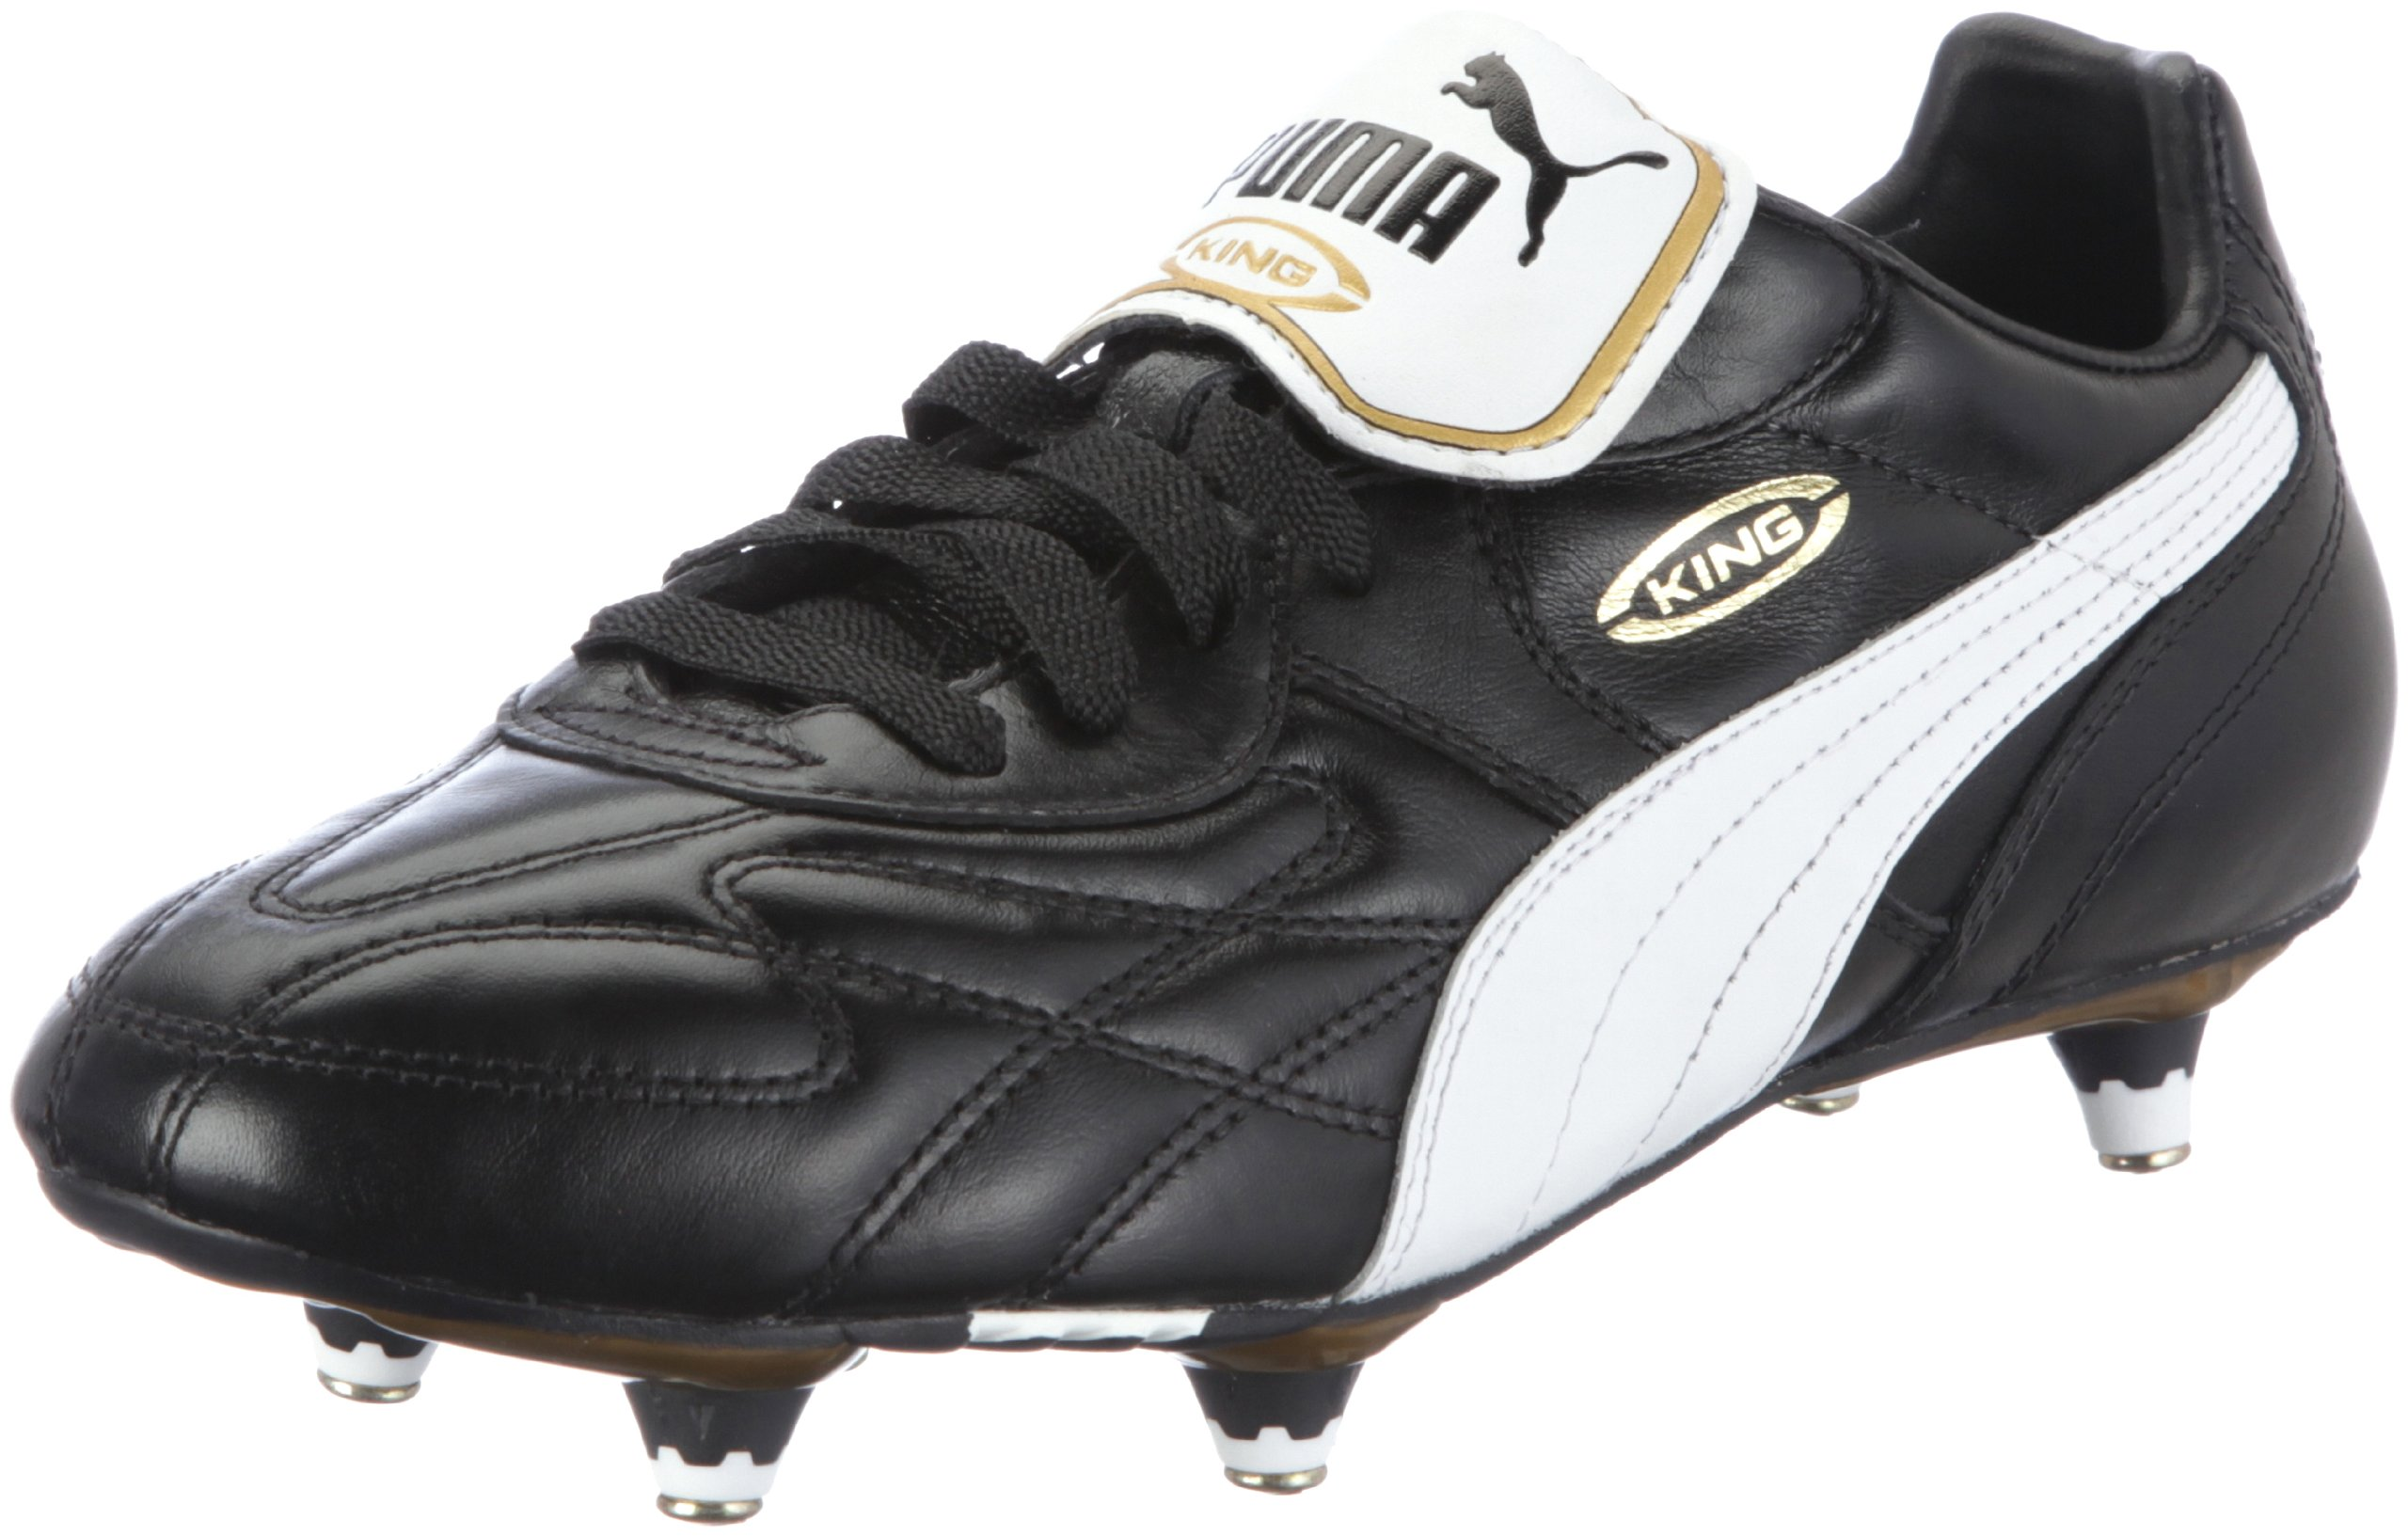 7c8100ea4d66 Best Rated in Men's Football Boots & Helpful Customer Reviews ...